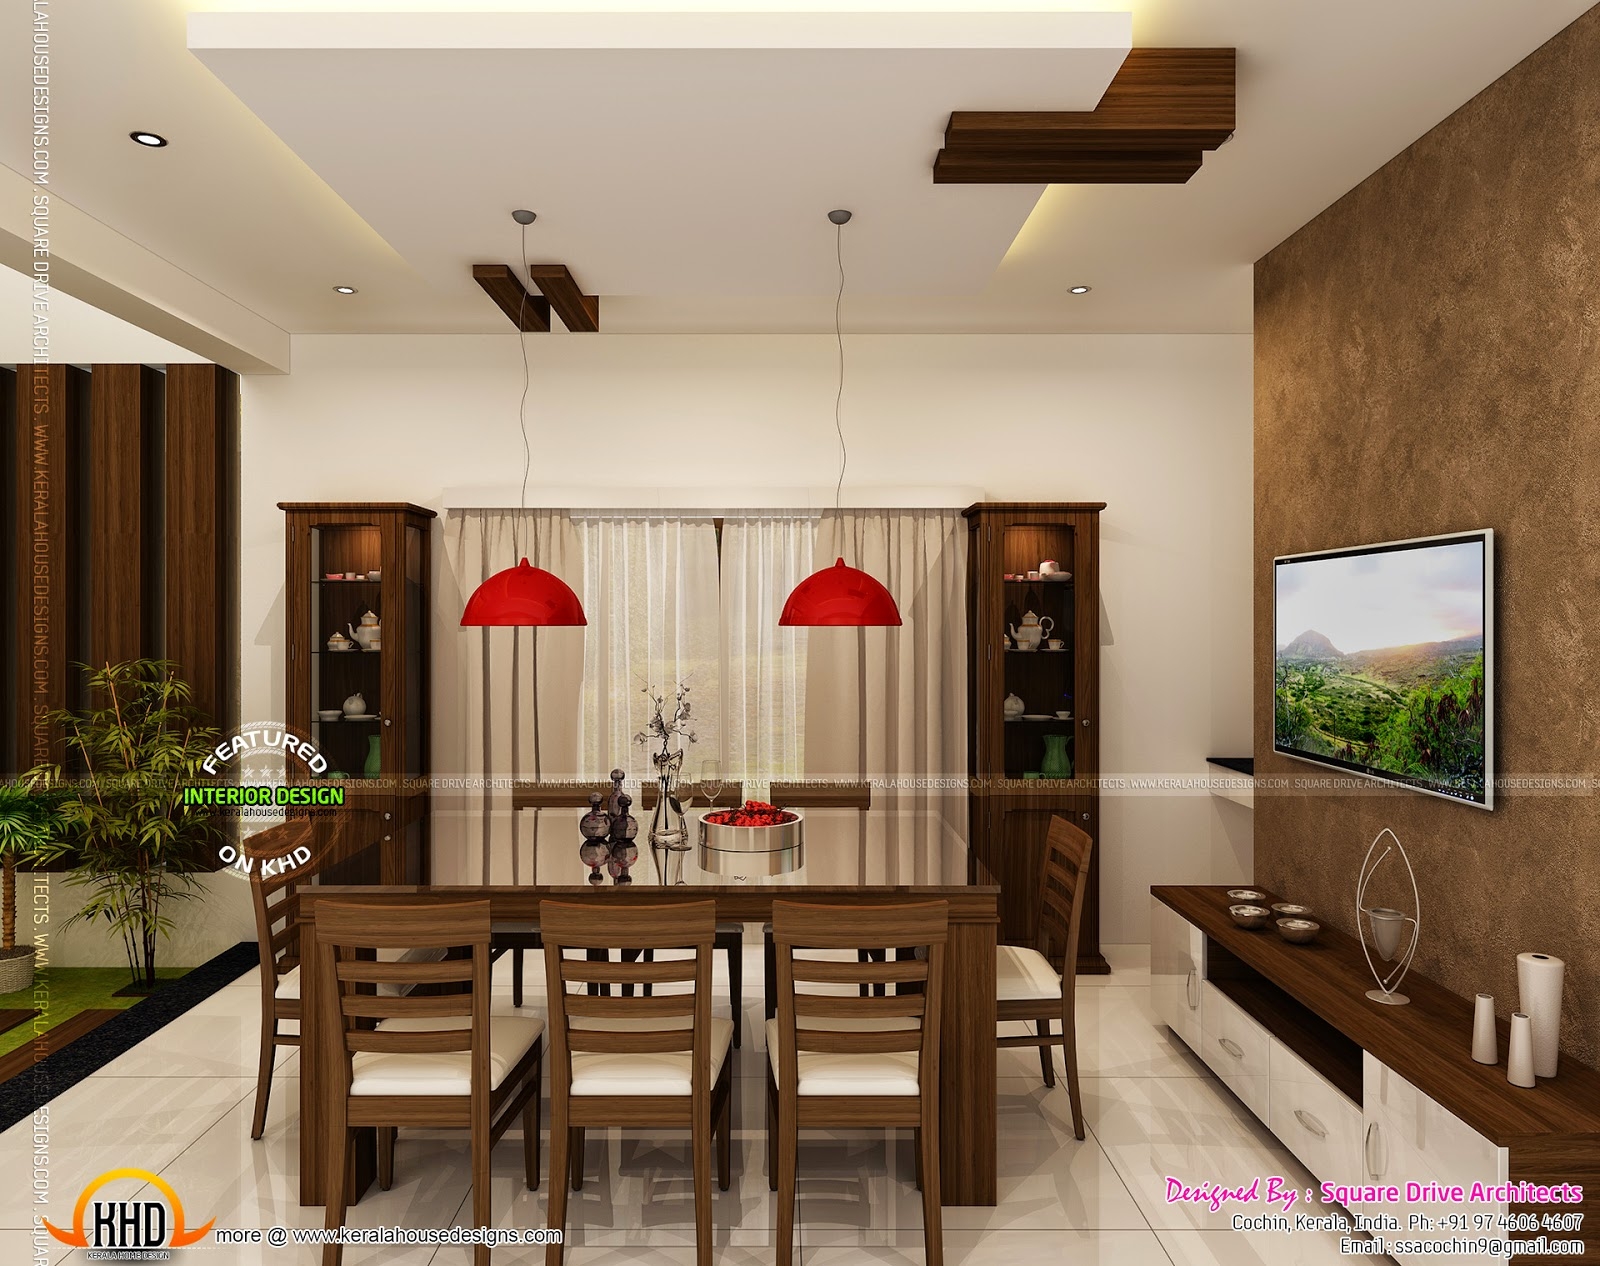 Luxury interior designs in kerala keralahousedesigns - Room interior designs ...